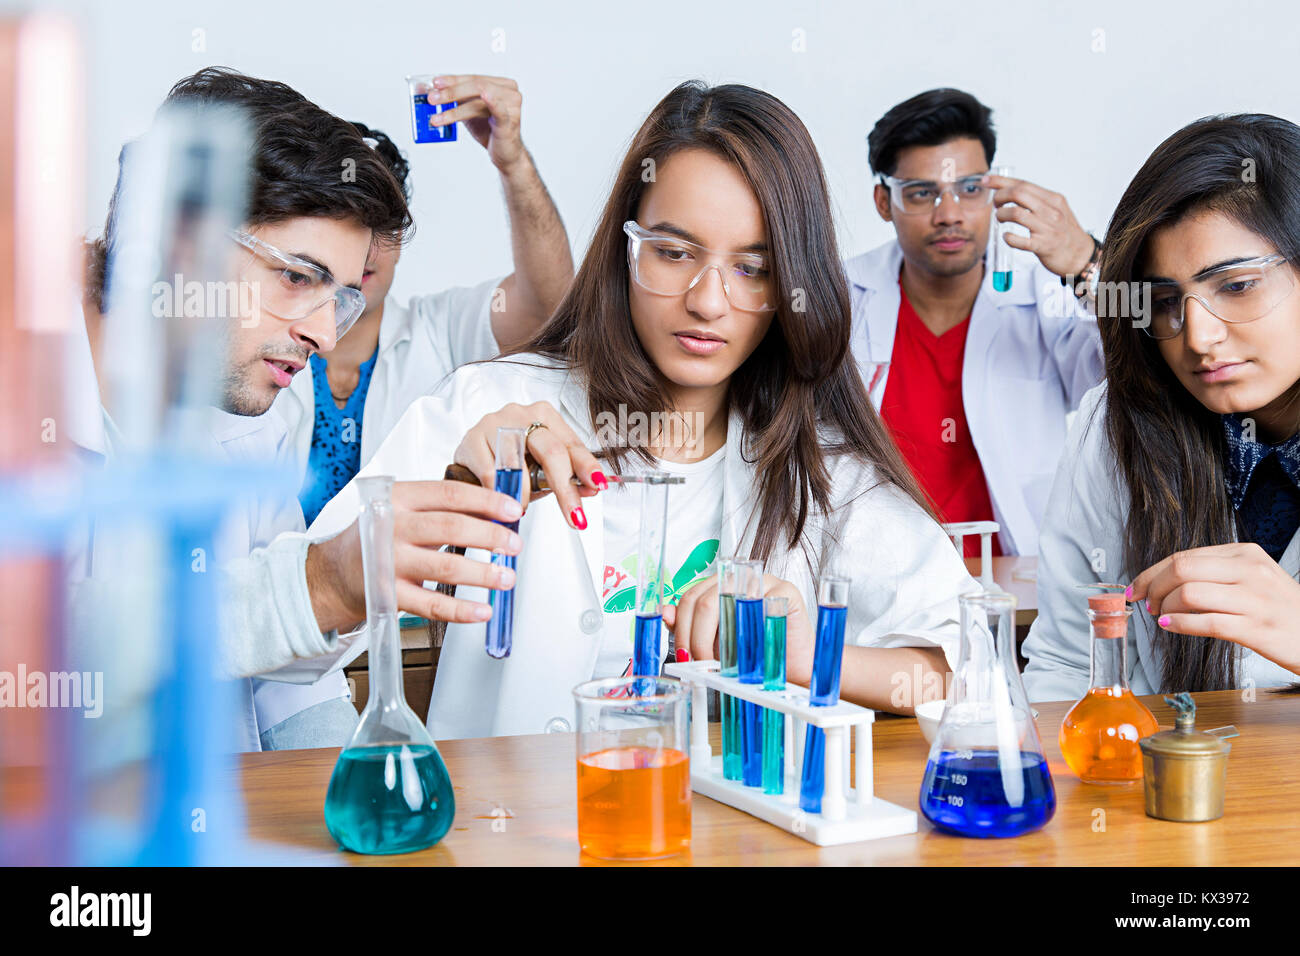 Indian Science Students Friends Scientist s Chemistry Lab